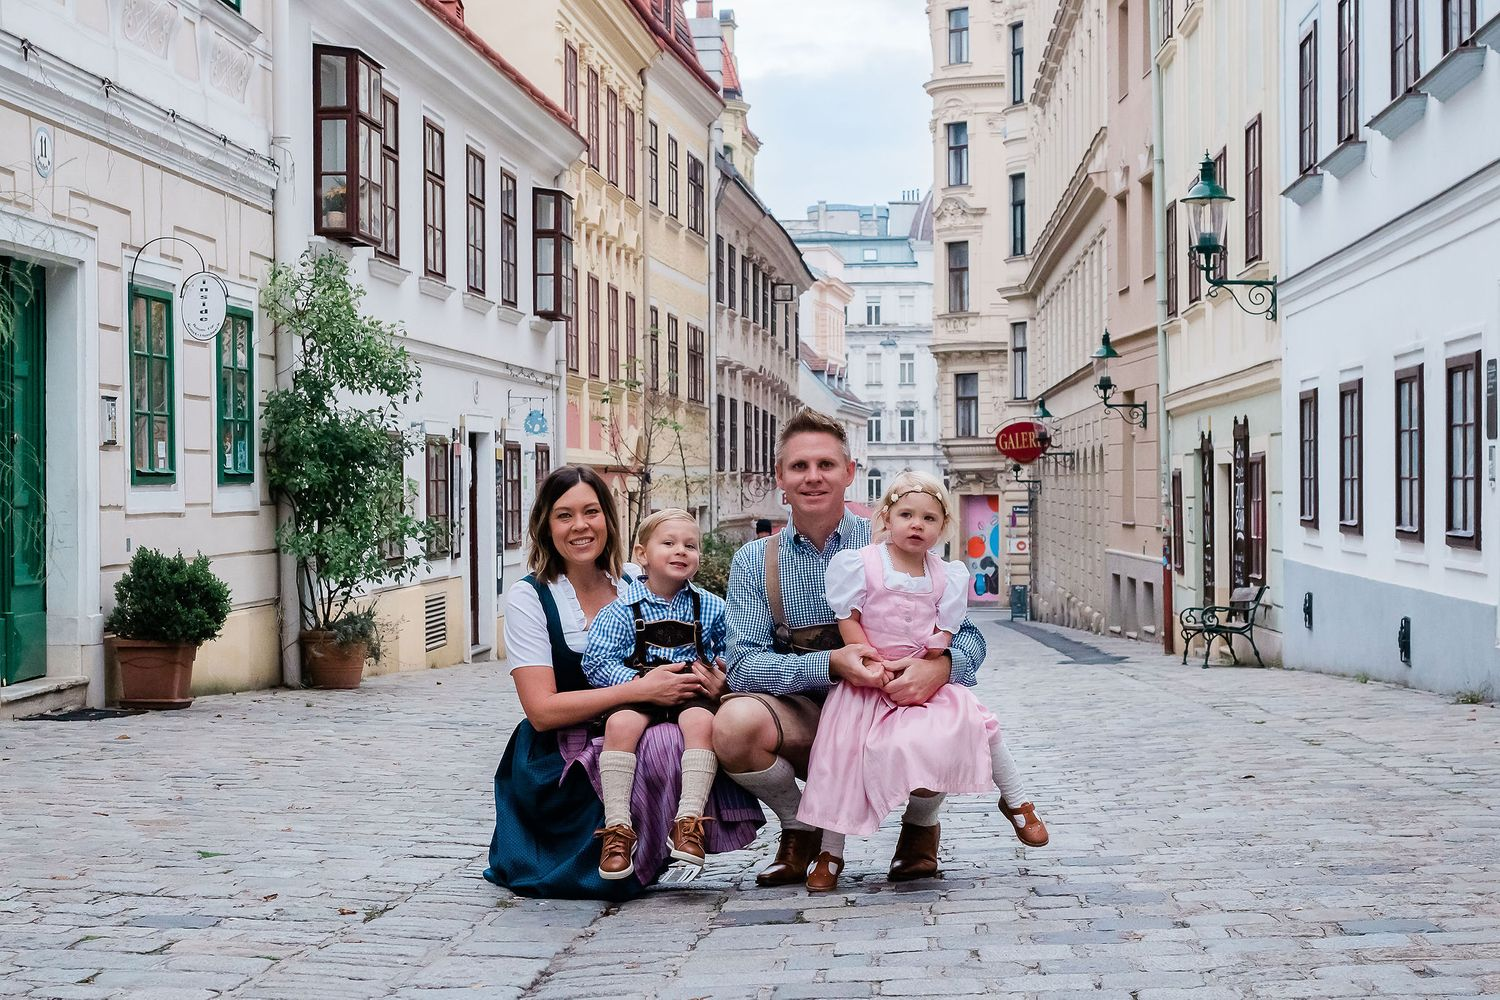 Family Spittelberggasse  7th district  Vienna wearing traditional outfit